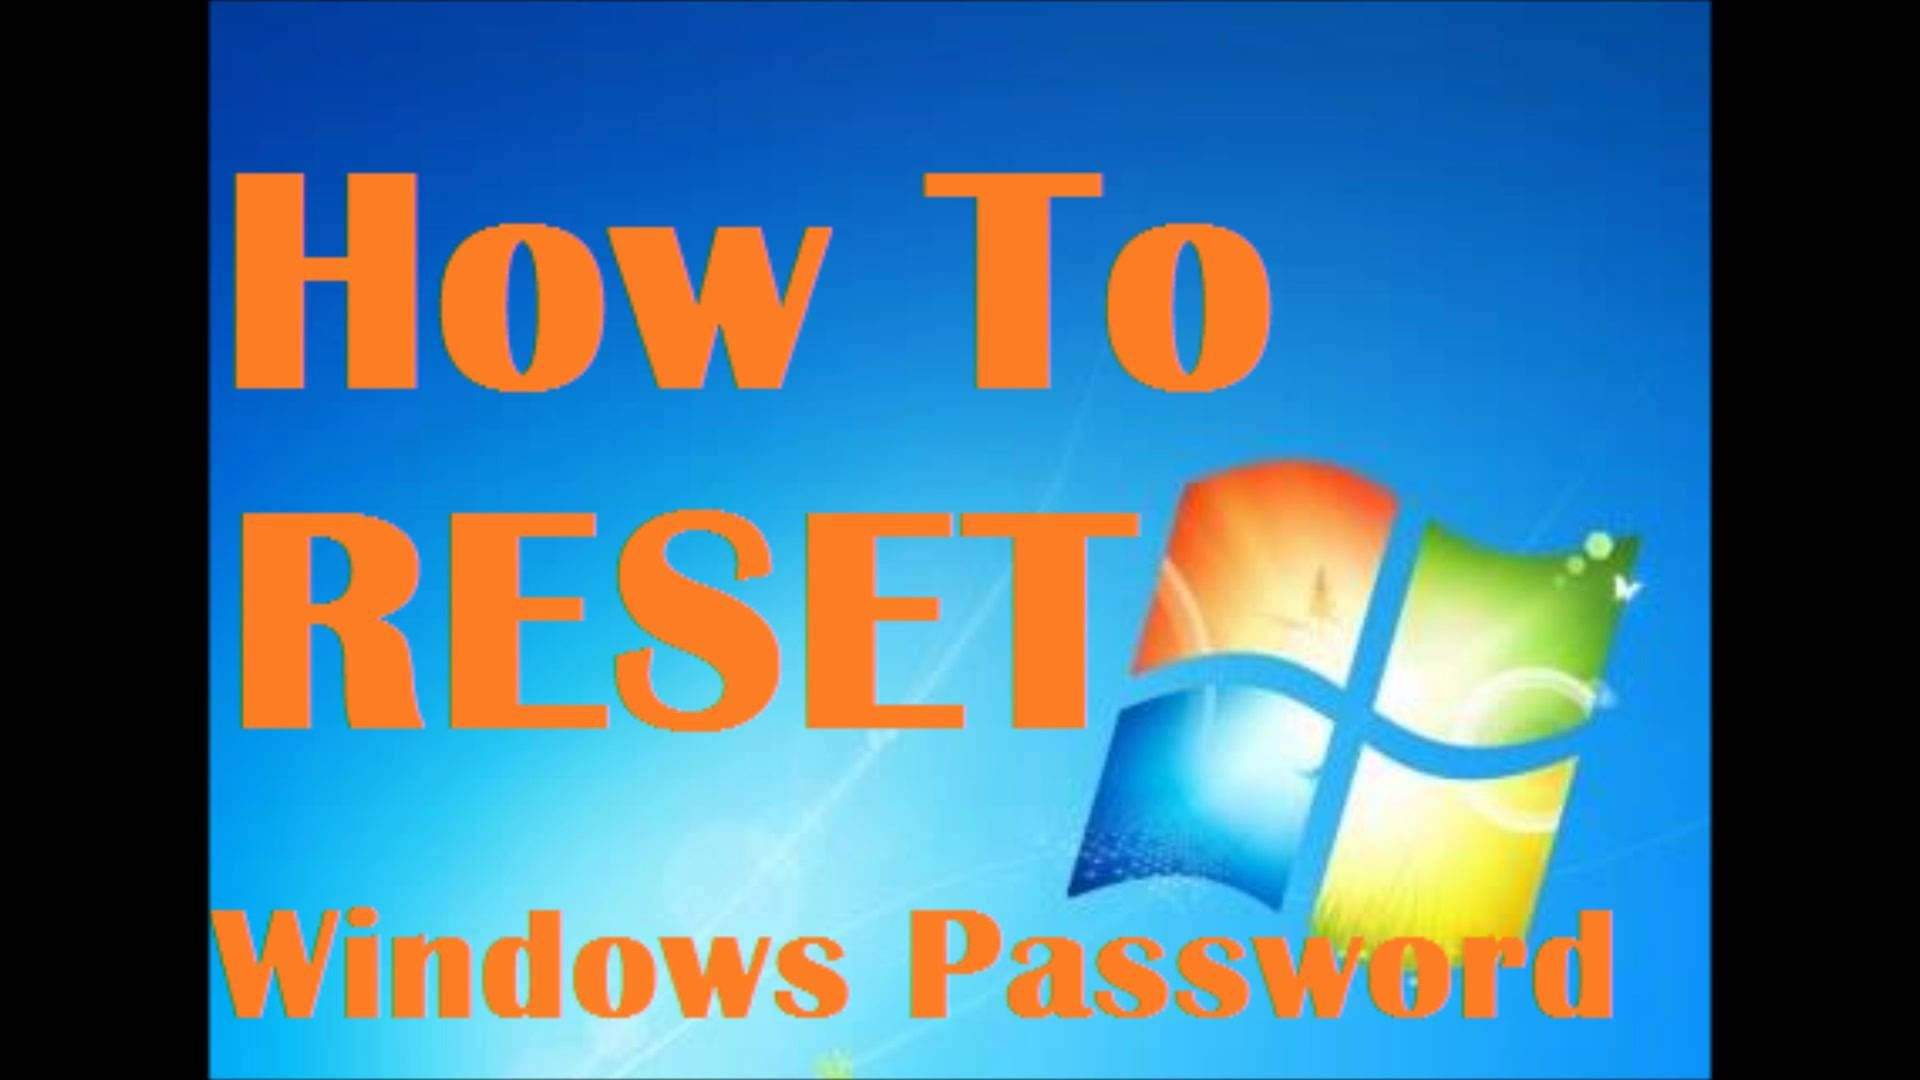 How To Get Into Laptop Without Password Windows 8